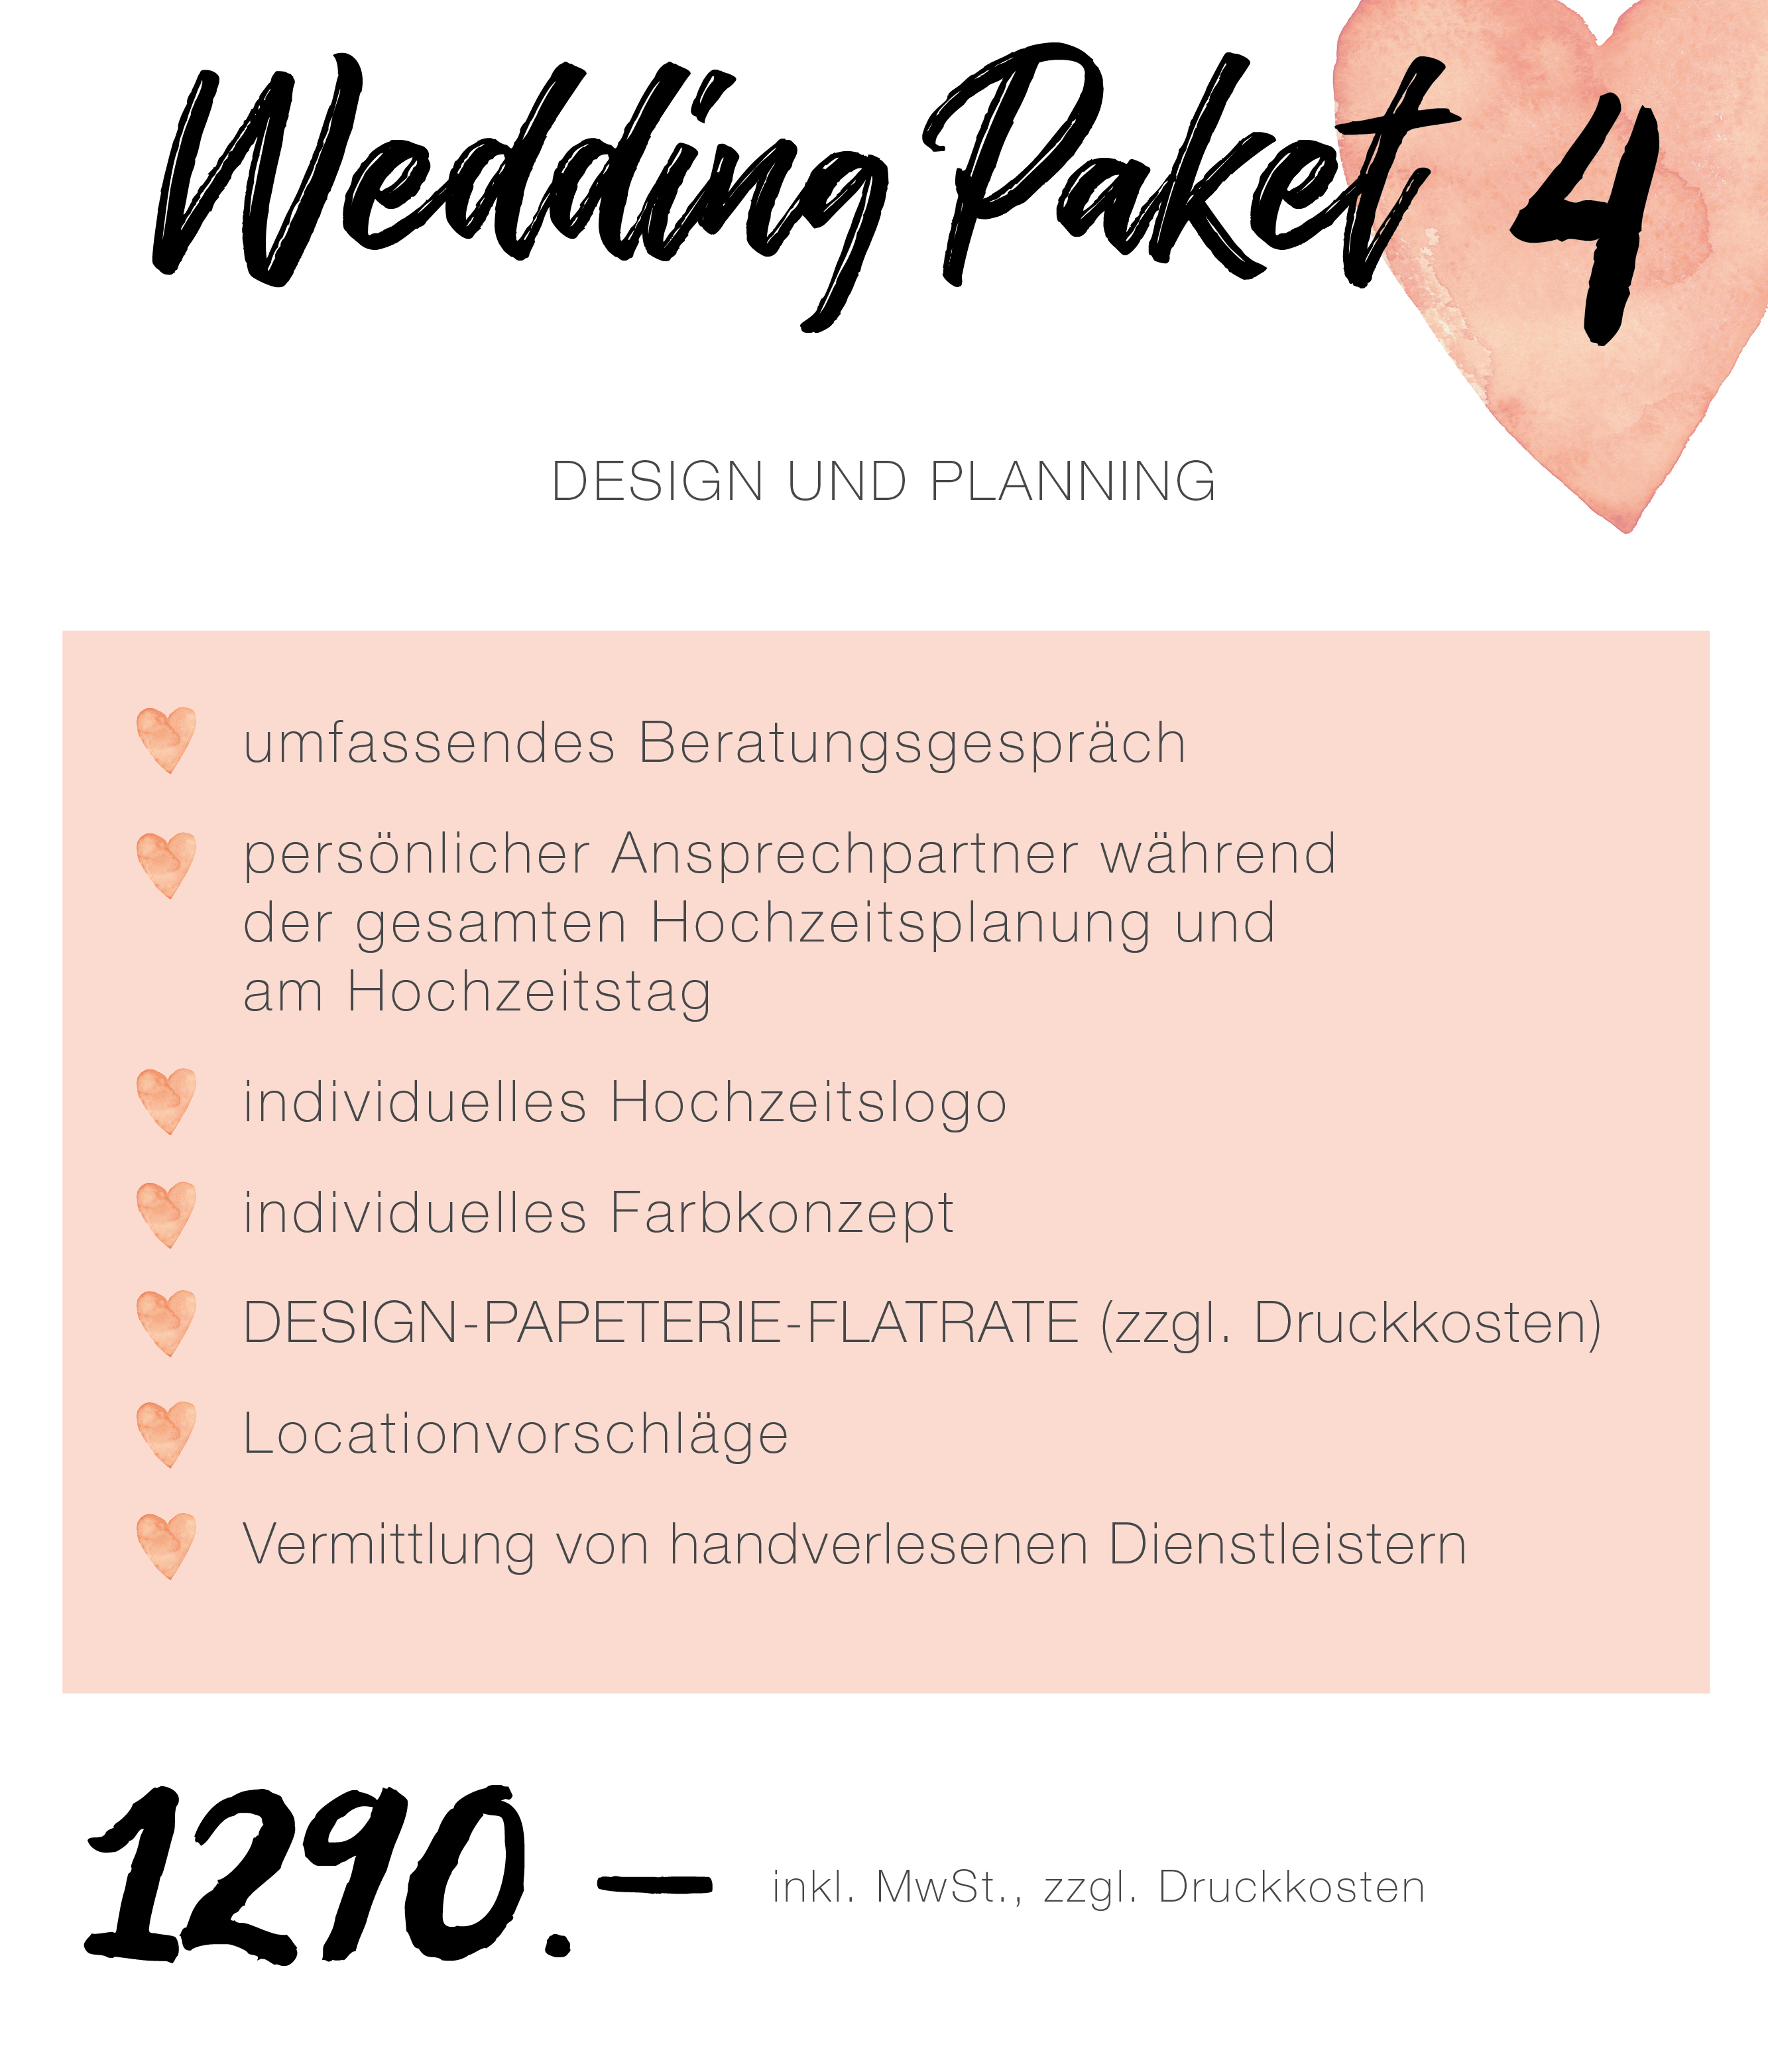 confettiandcream wedding paket 4